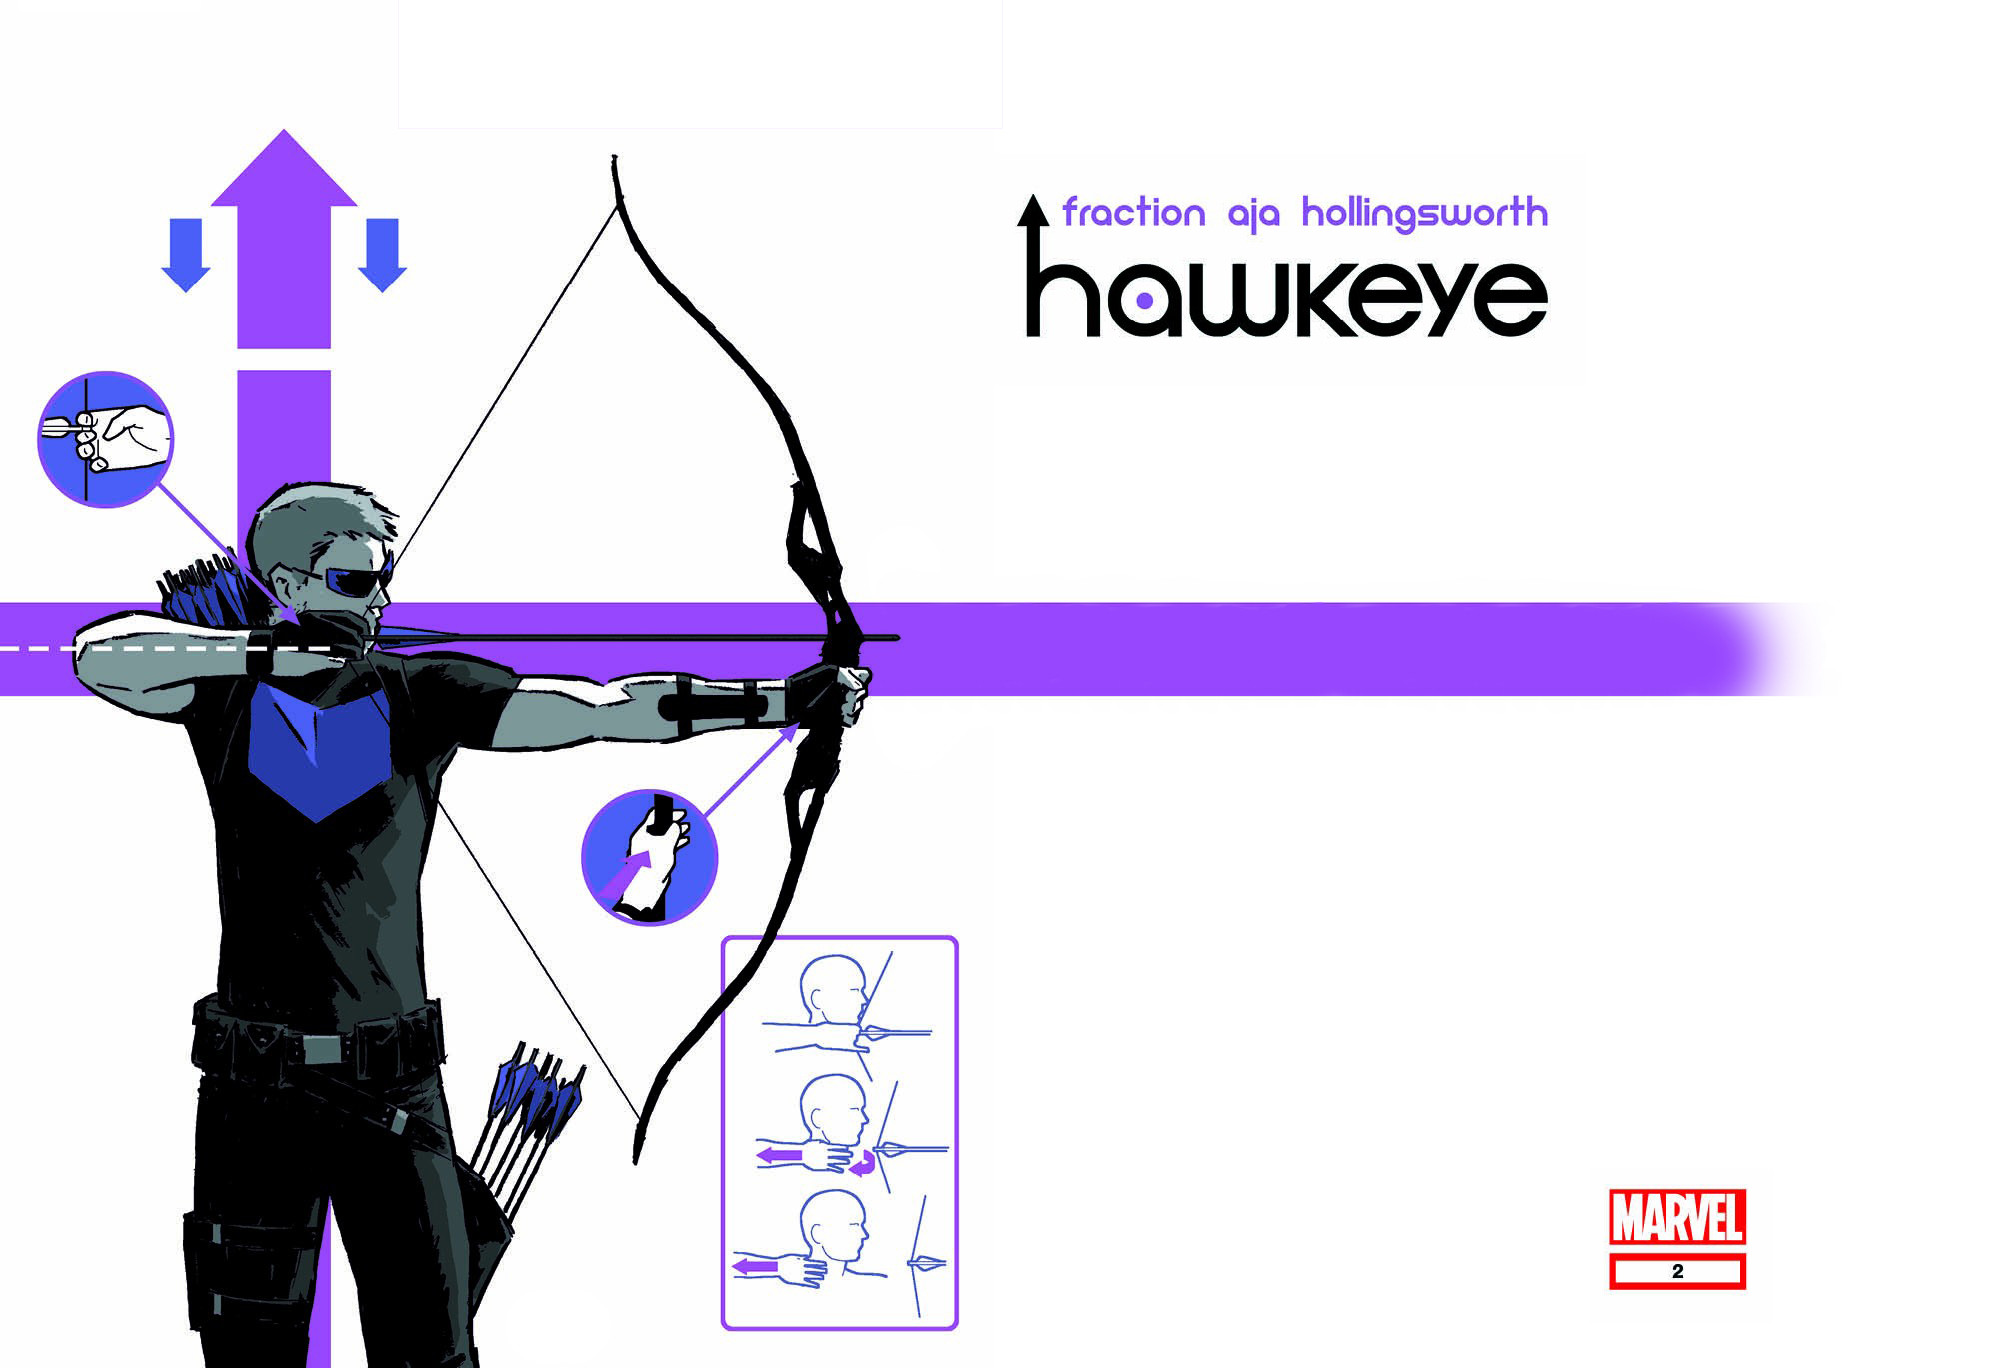 Marvel The Avengers Movie 2012 HD Wallpaper Hawkeye